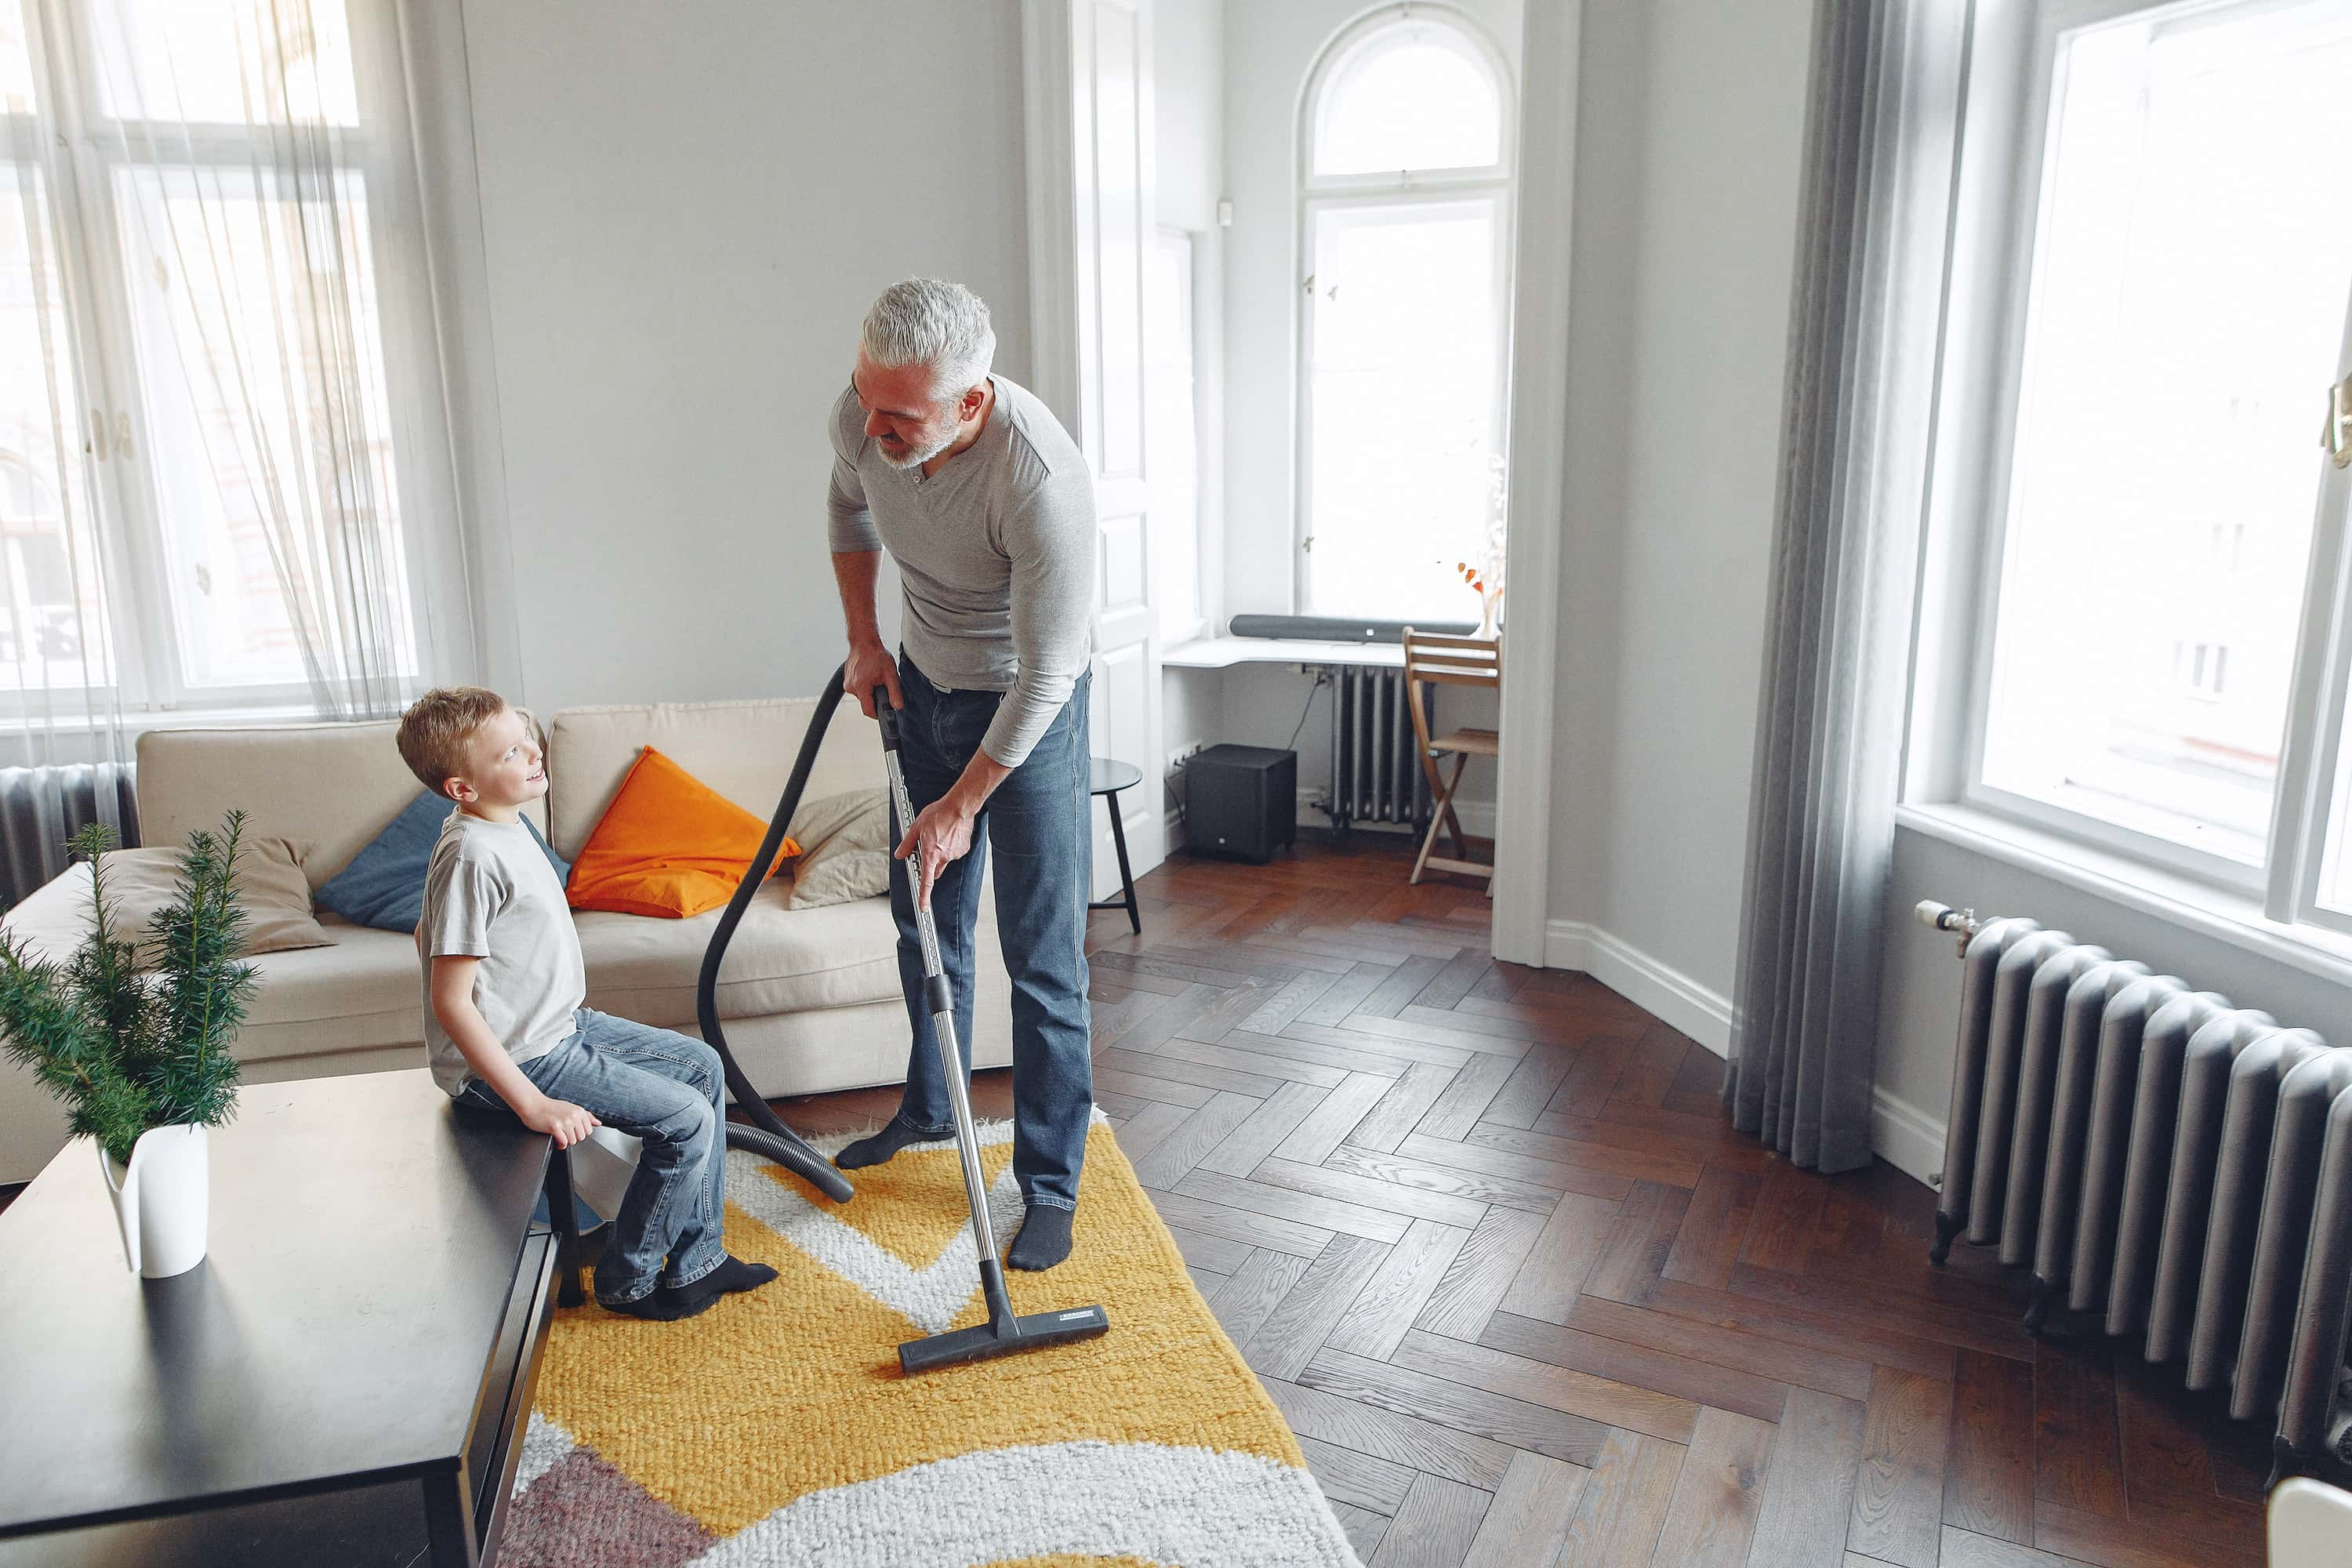 A man and his son vacuum together.